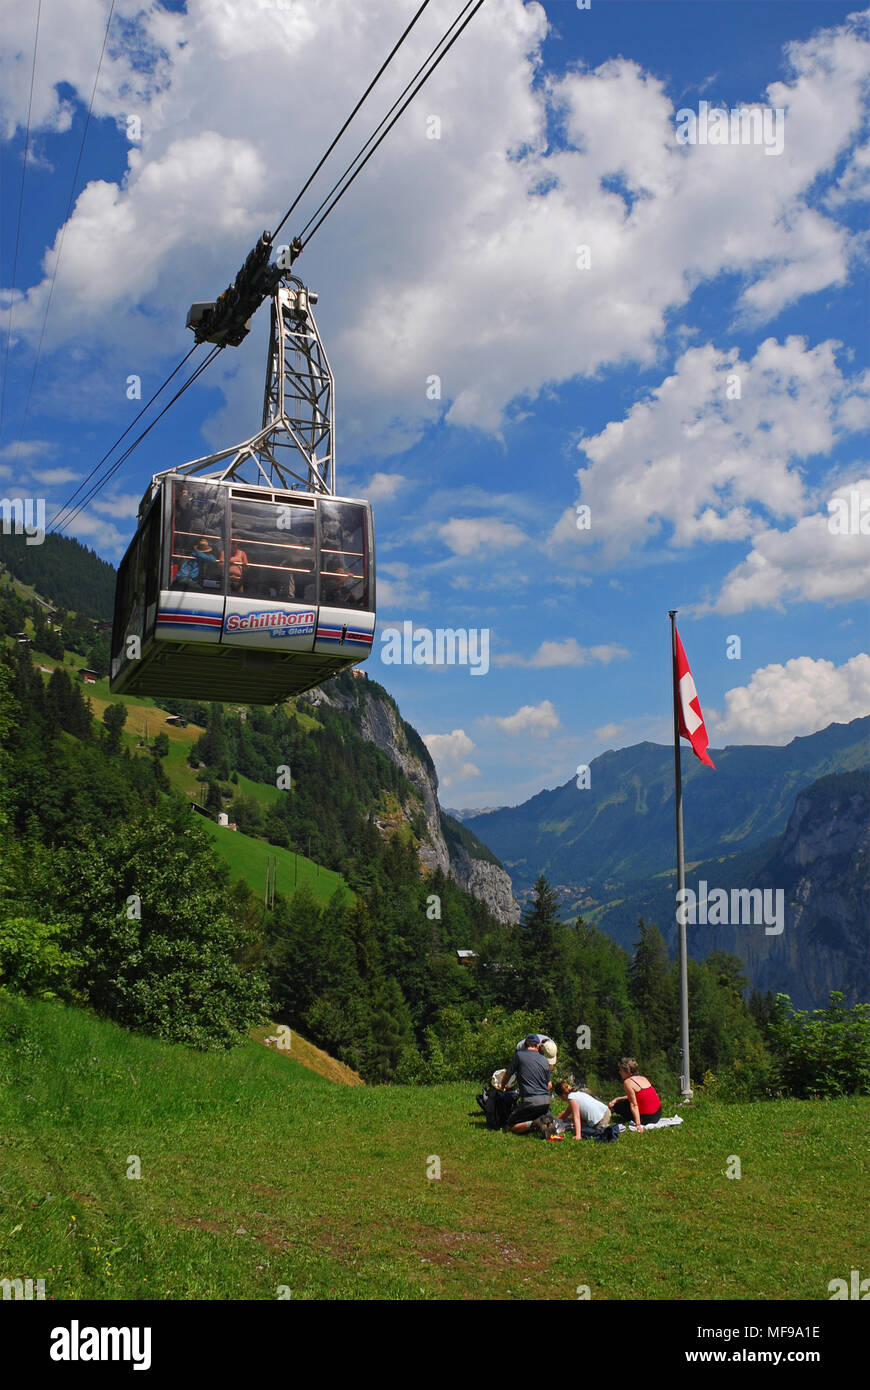 Schilthornbahn on the way from Gimmelwald to Schilthorn and people picnicking, Gimmelwald,Bernese Oberland , Switzerland Stock Photo